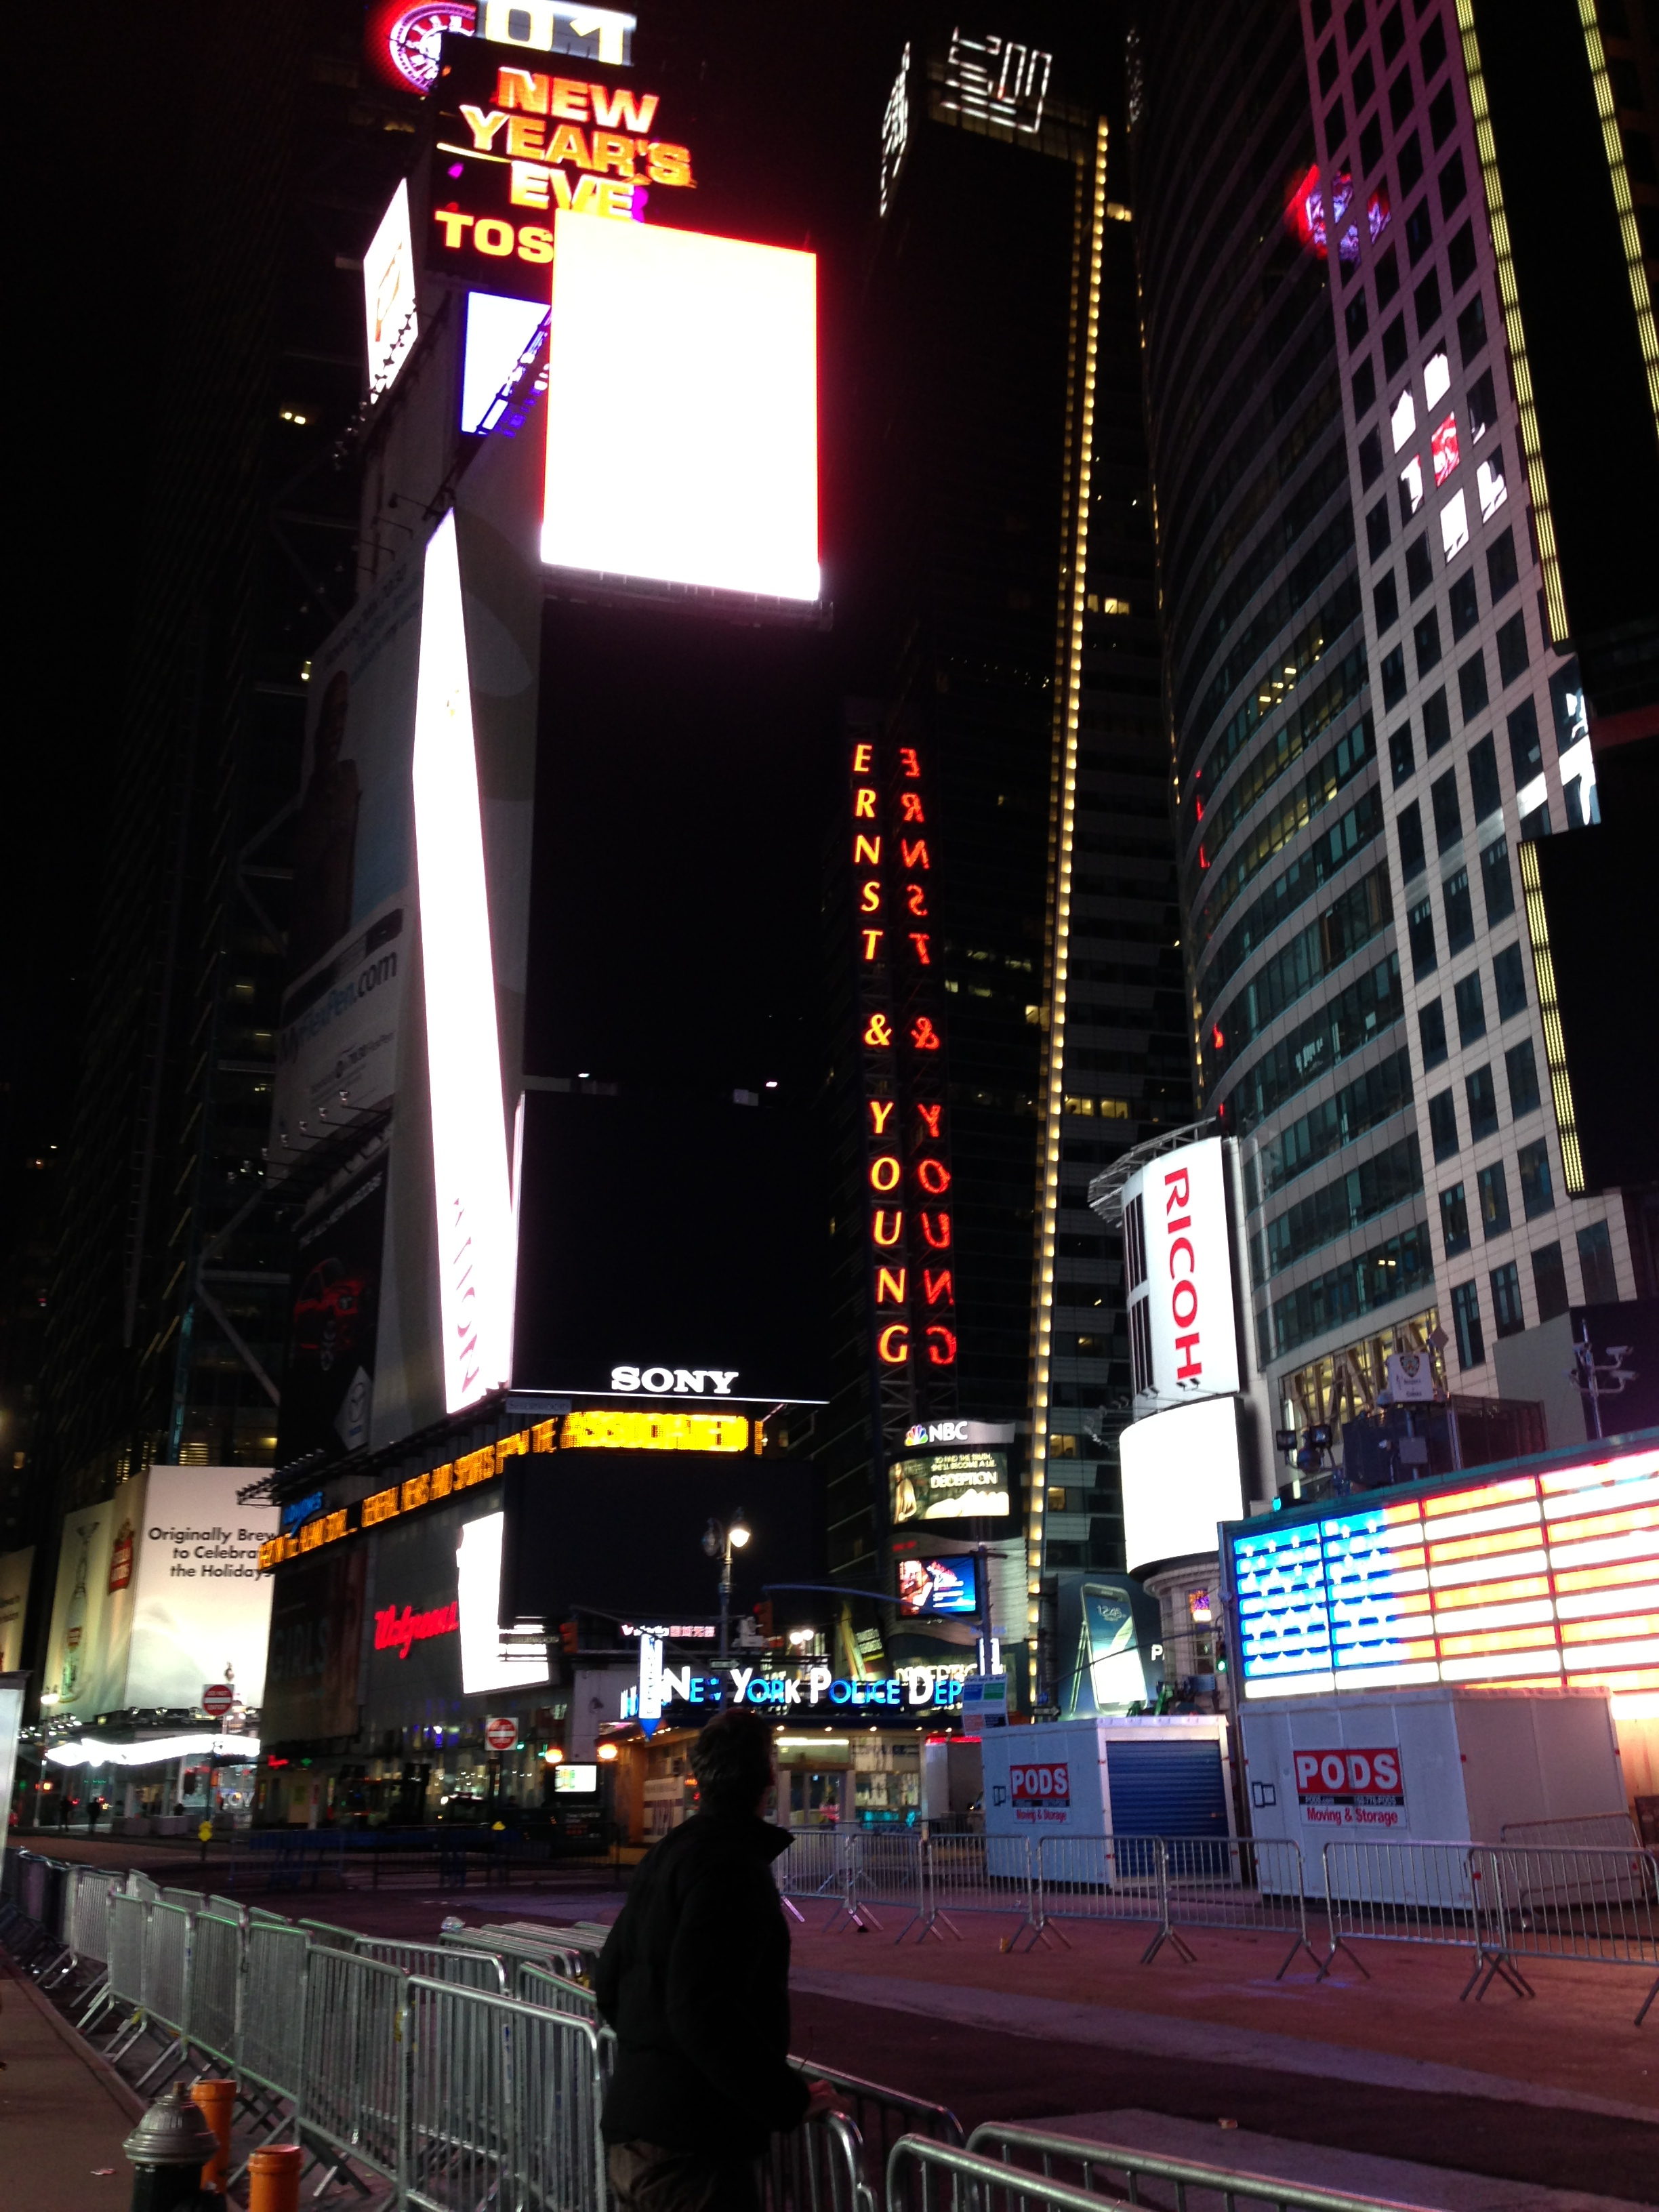 Times Square, Dec. 30, Roughly 4AM